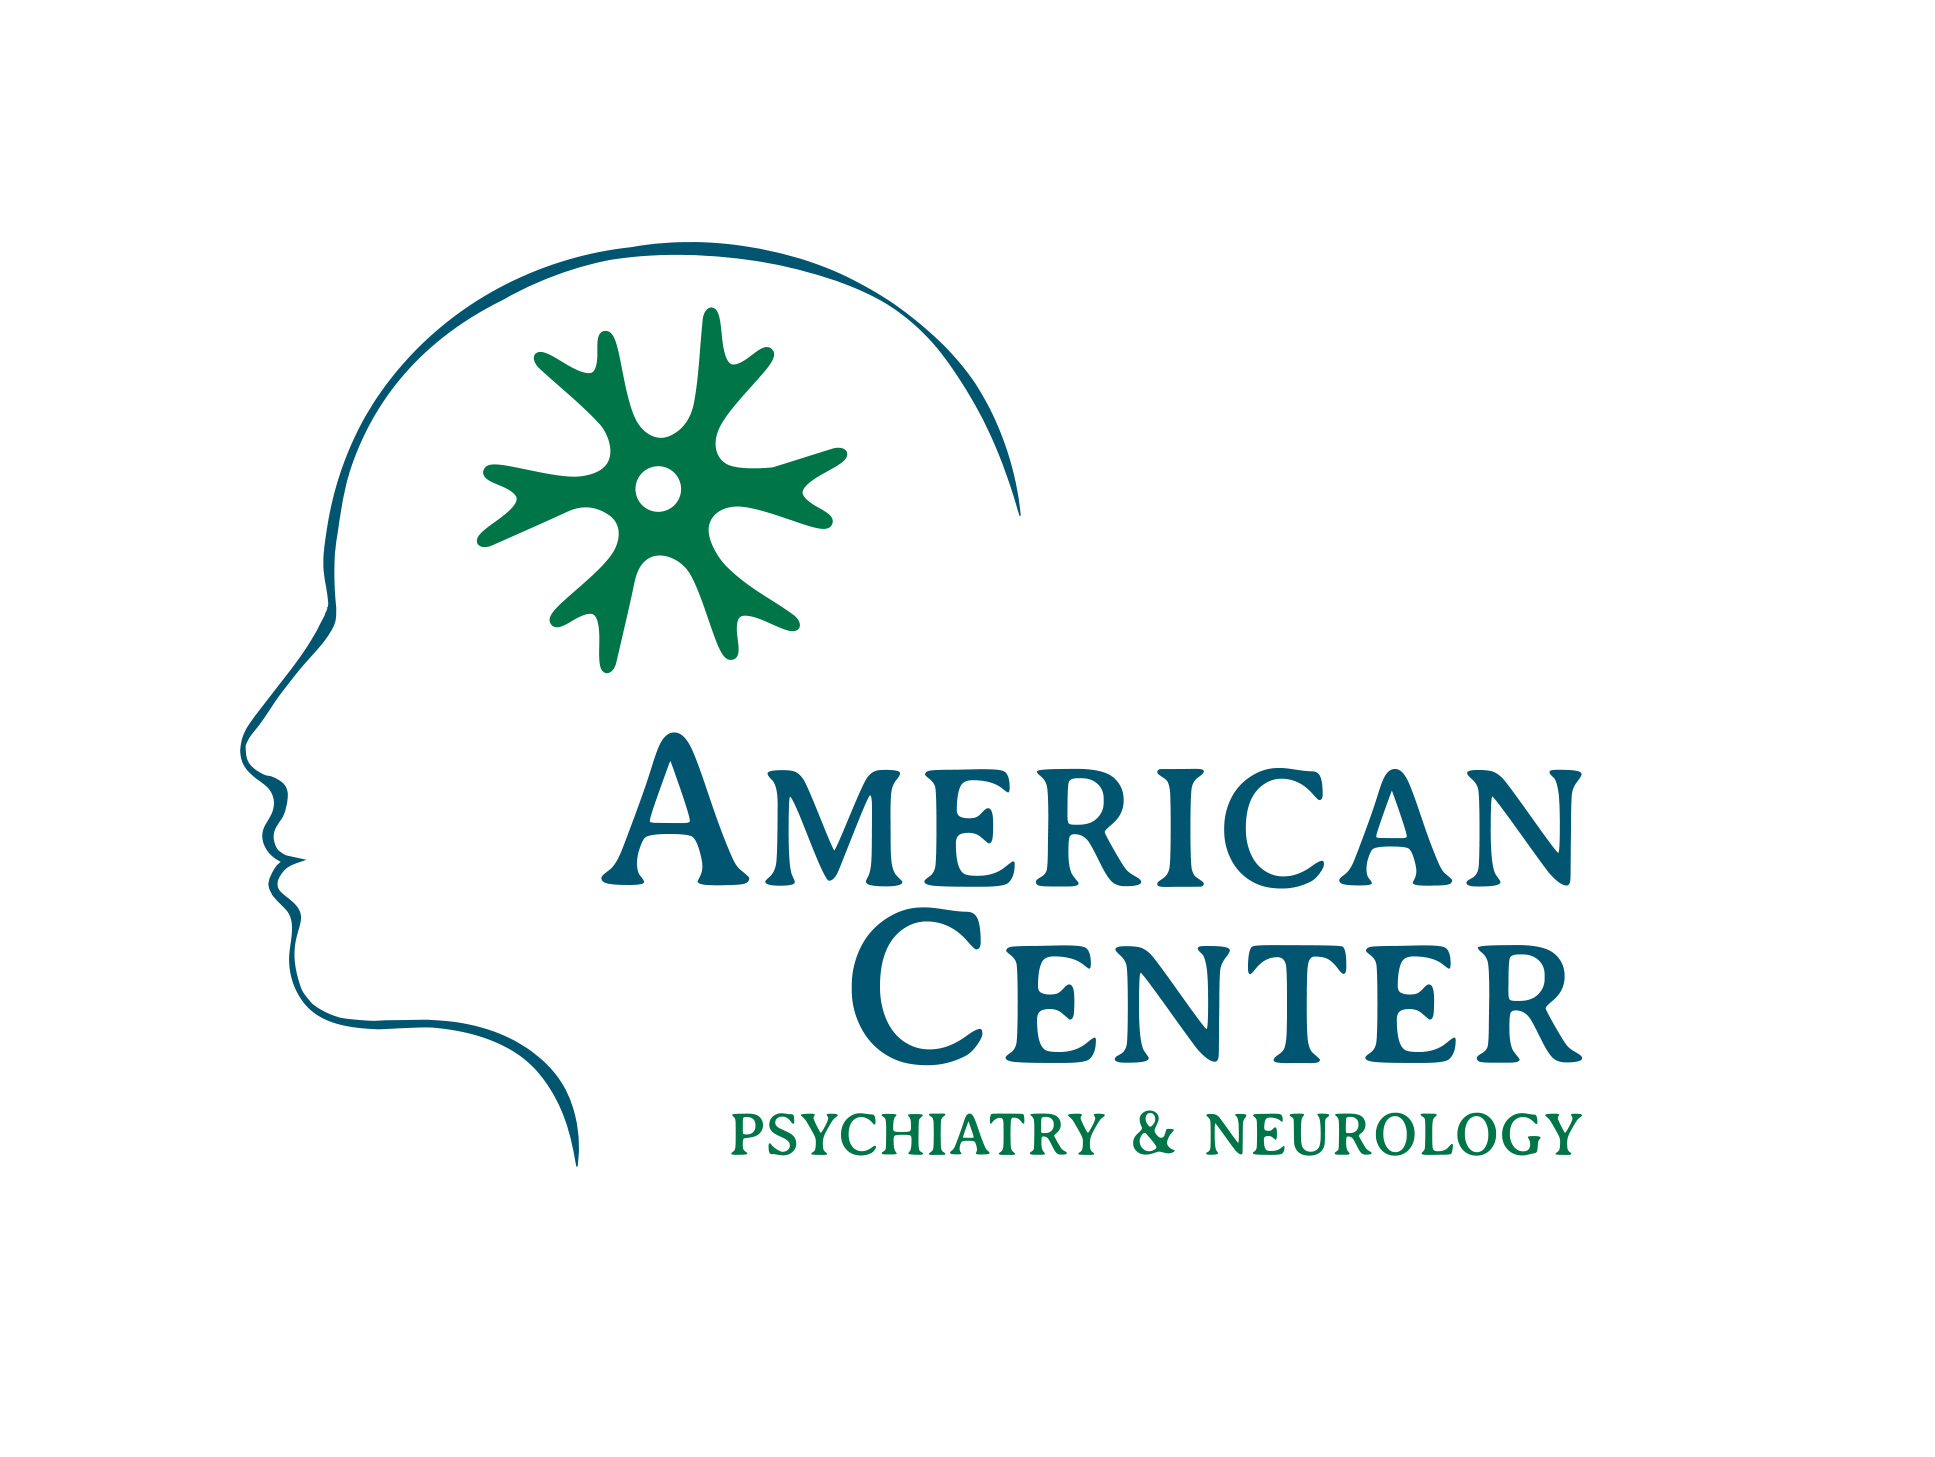 American Center for Psychiatry and Neurology - Sharjah